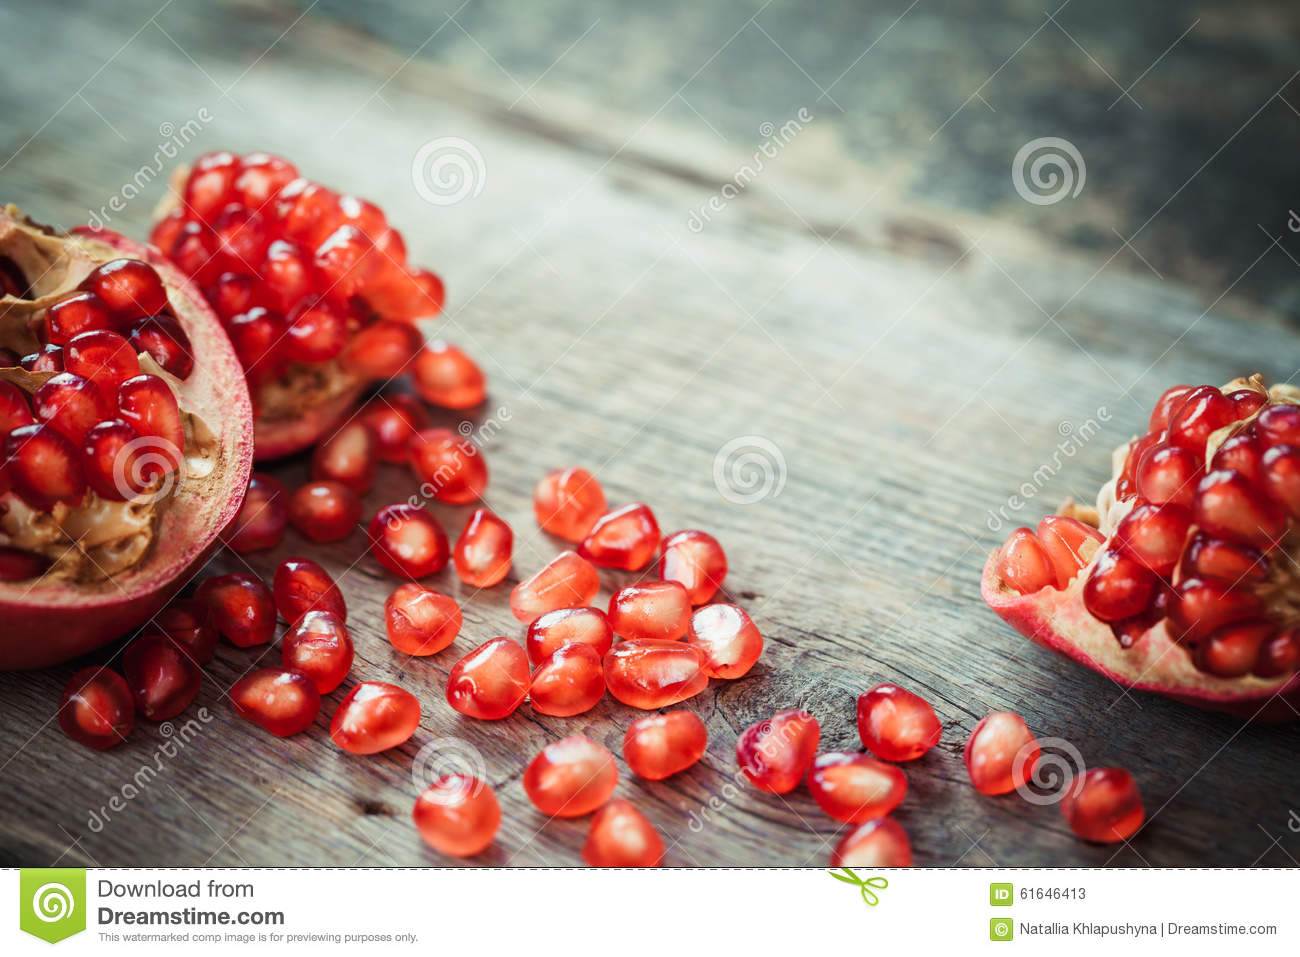 Pomegranate slices and garnet fruit seeds on table.